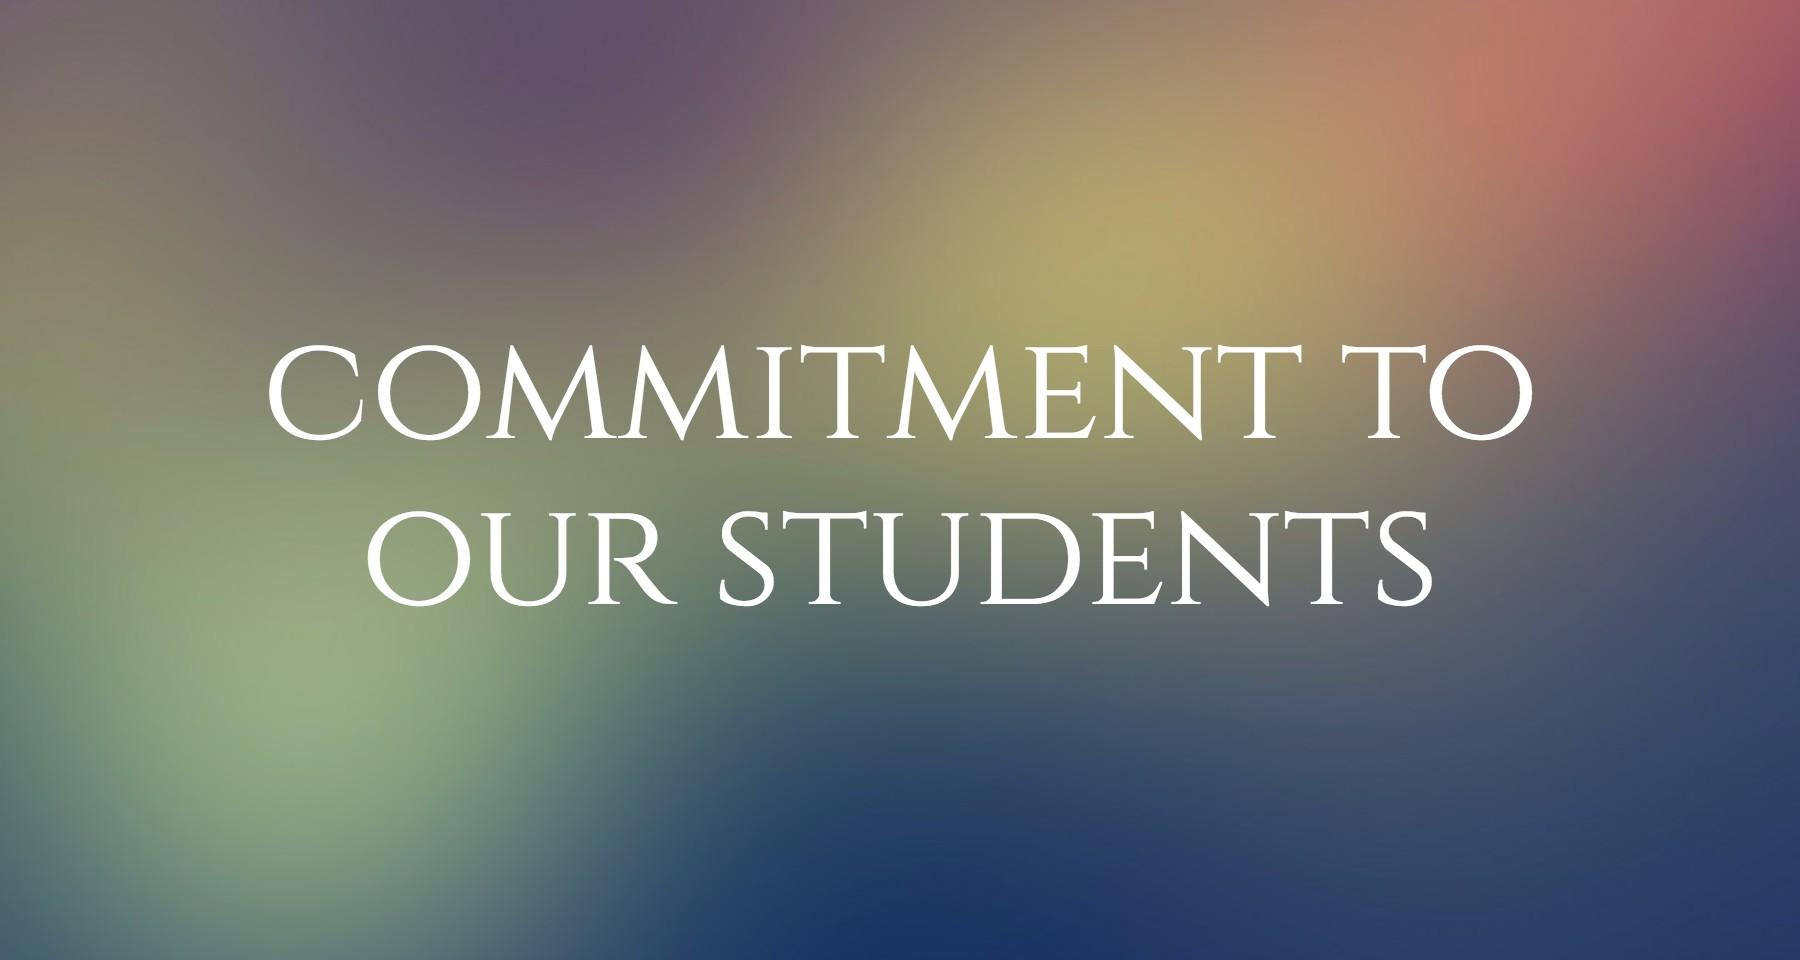 Commitment To Our Students